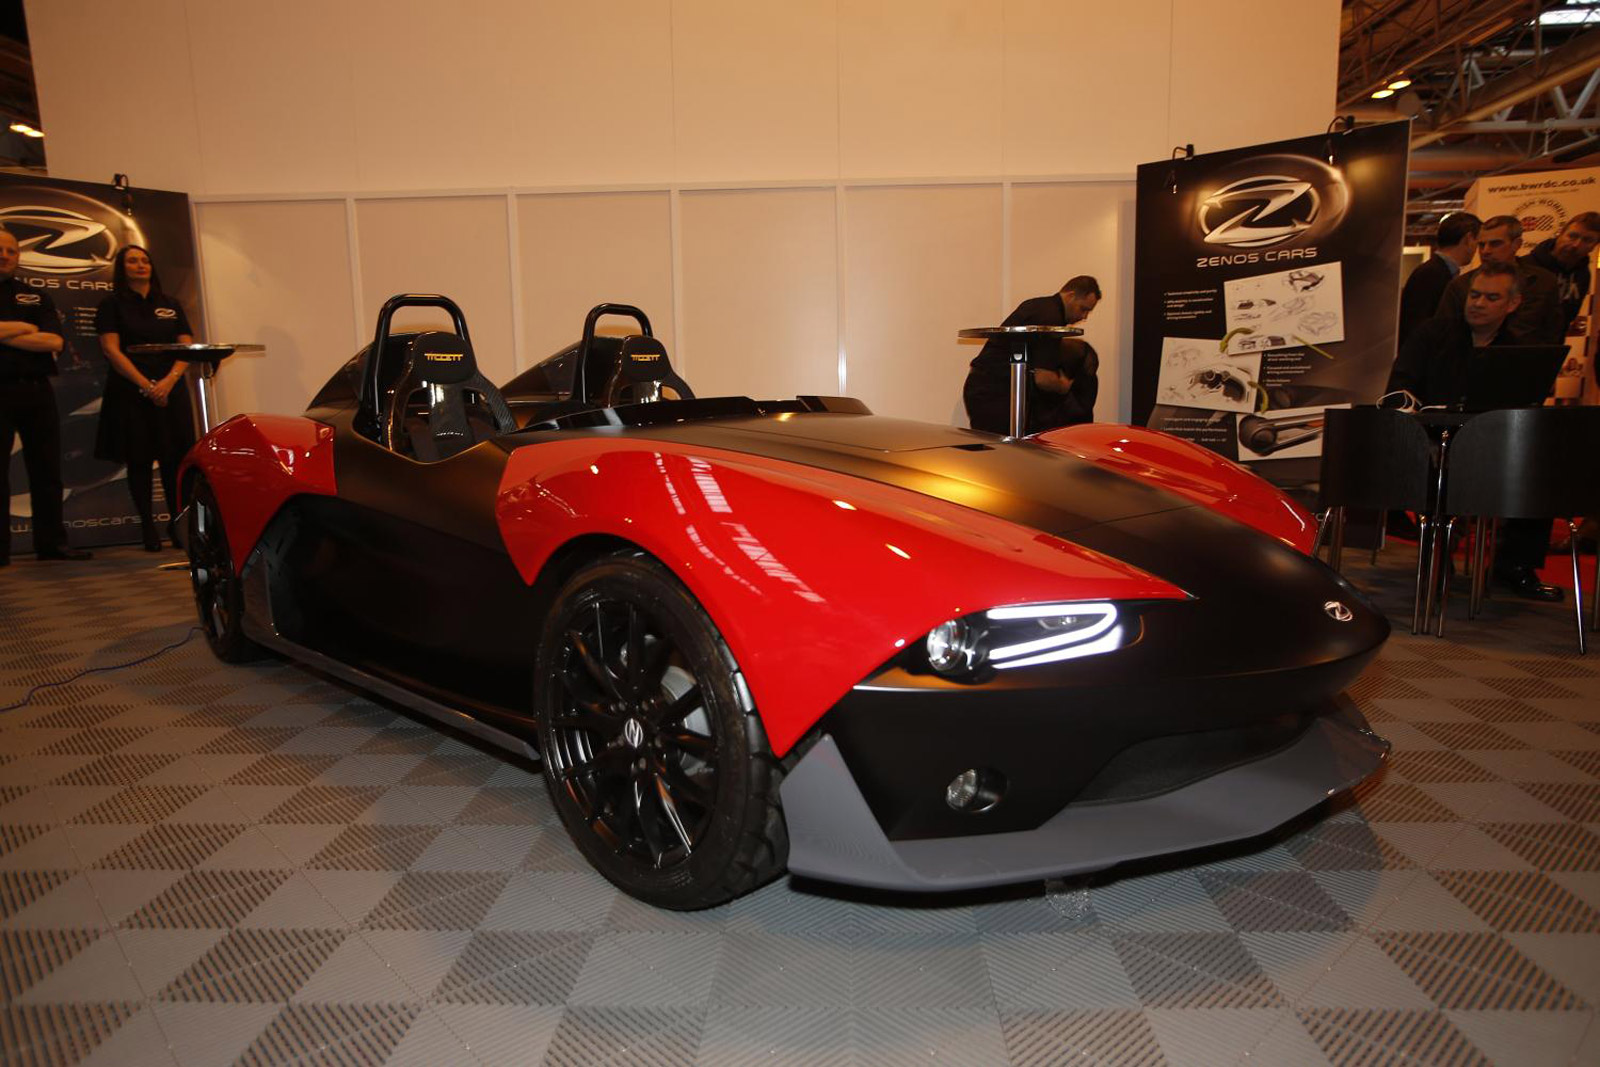 Zenos launches in the US, first car priced from $39,500